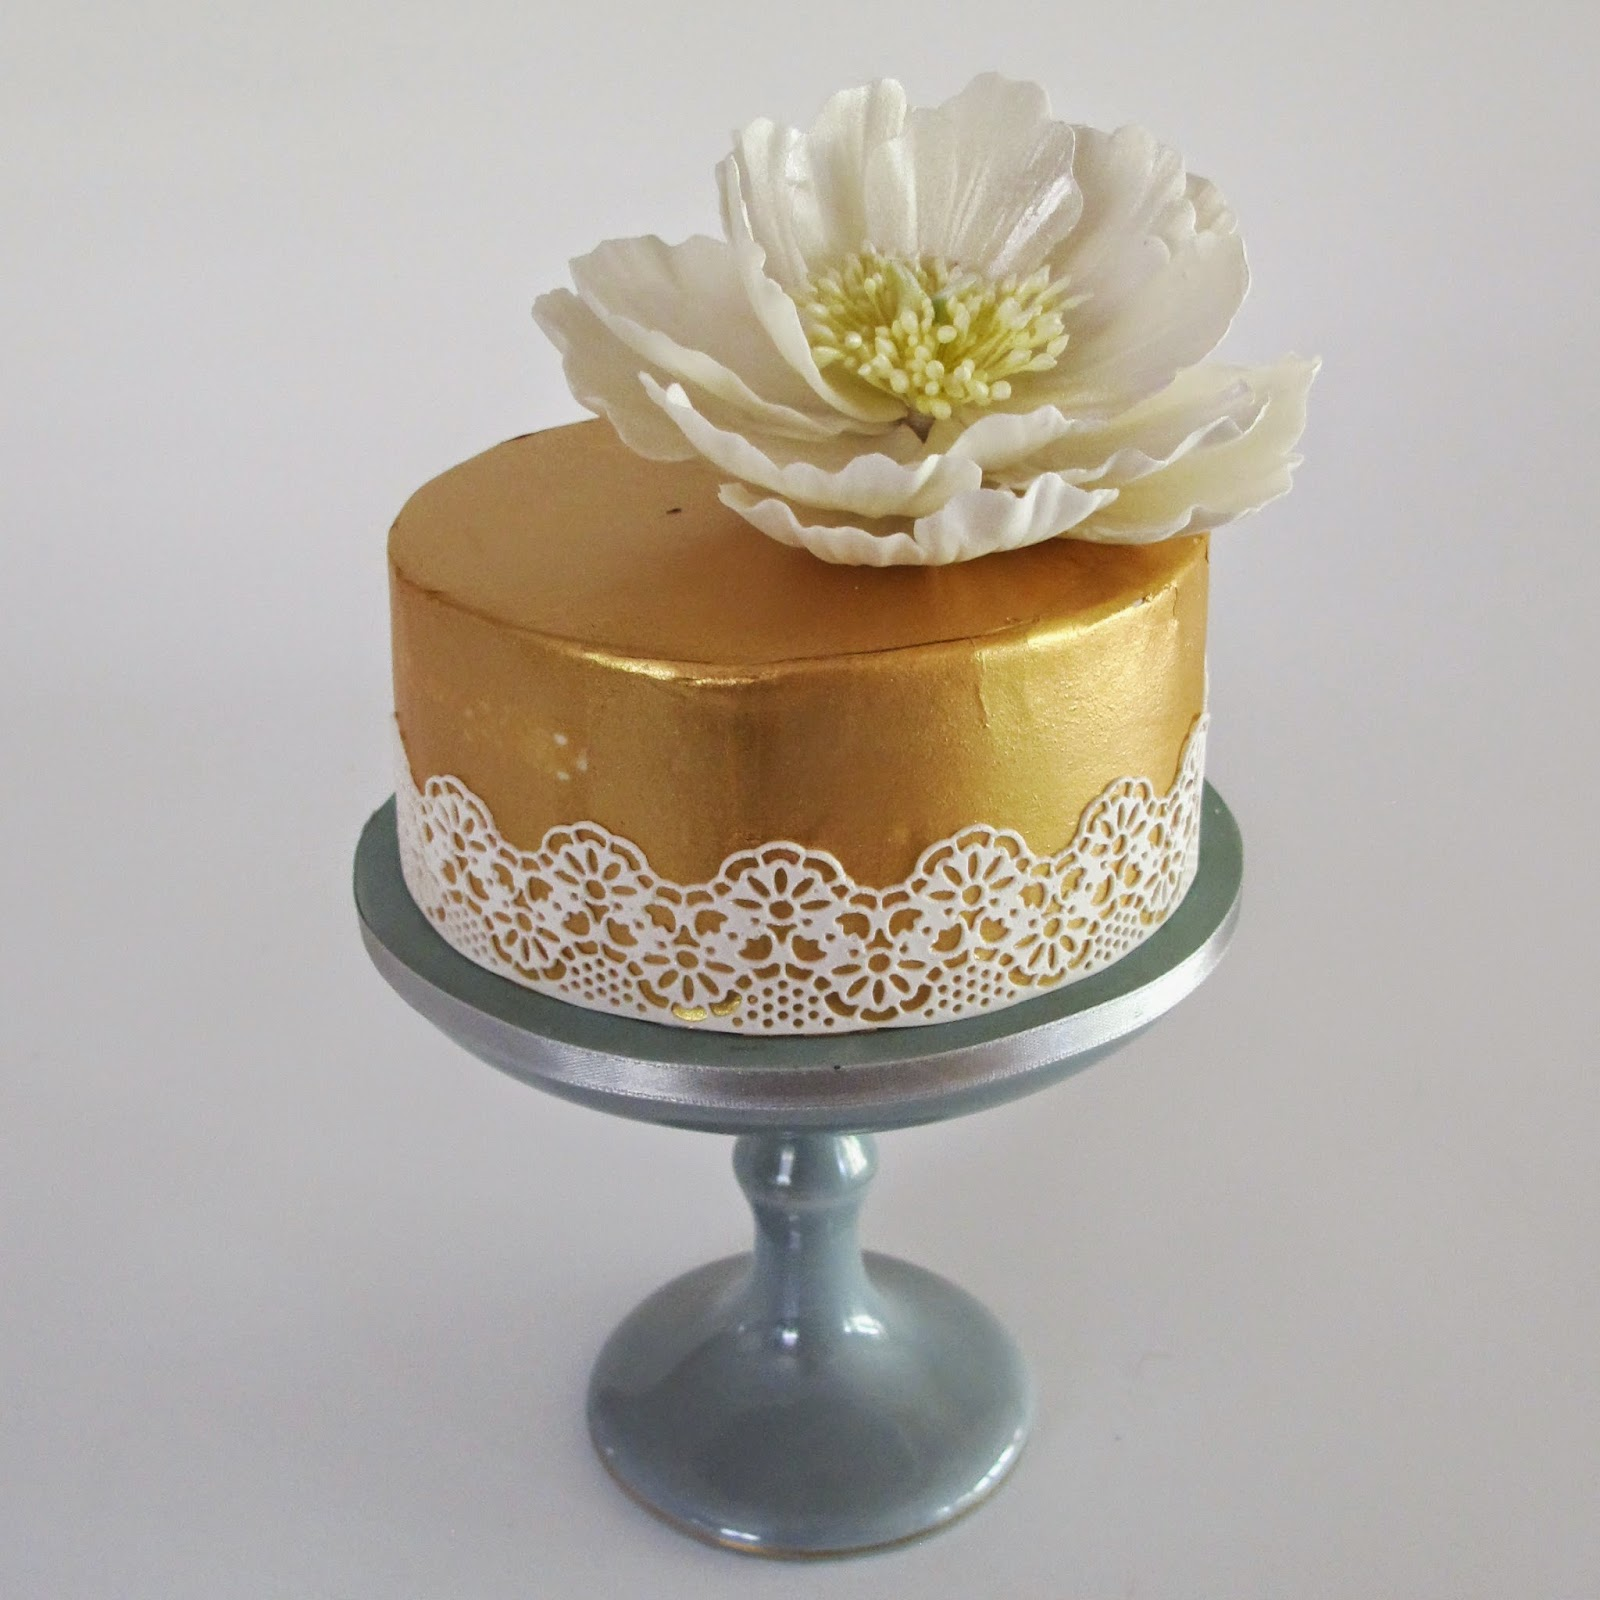 Cake Decorating Gold Leaf : Anna Maria Cake Design: How to create faux Gold leaf using ...